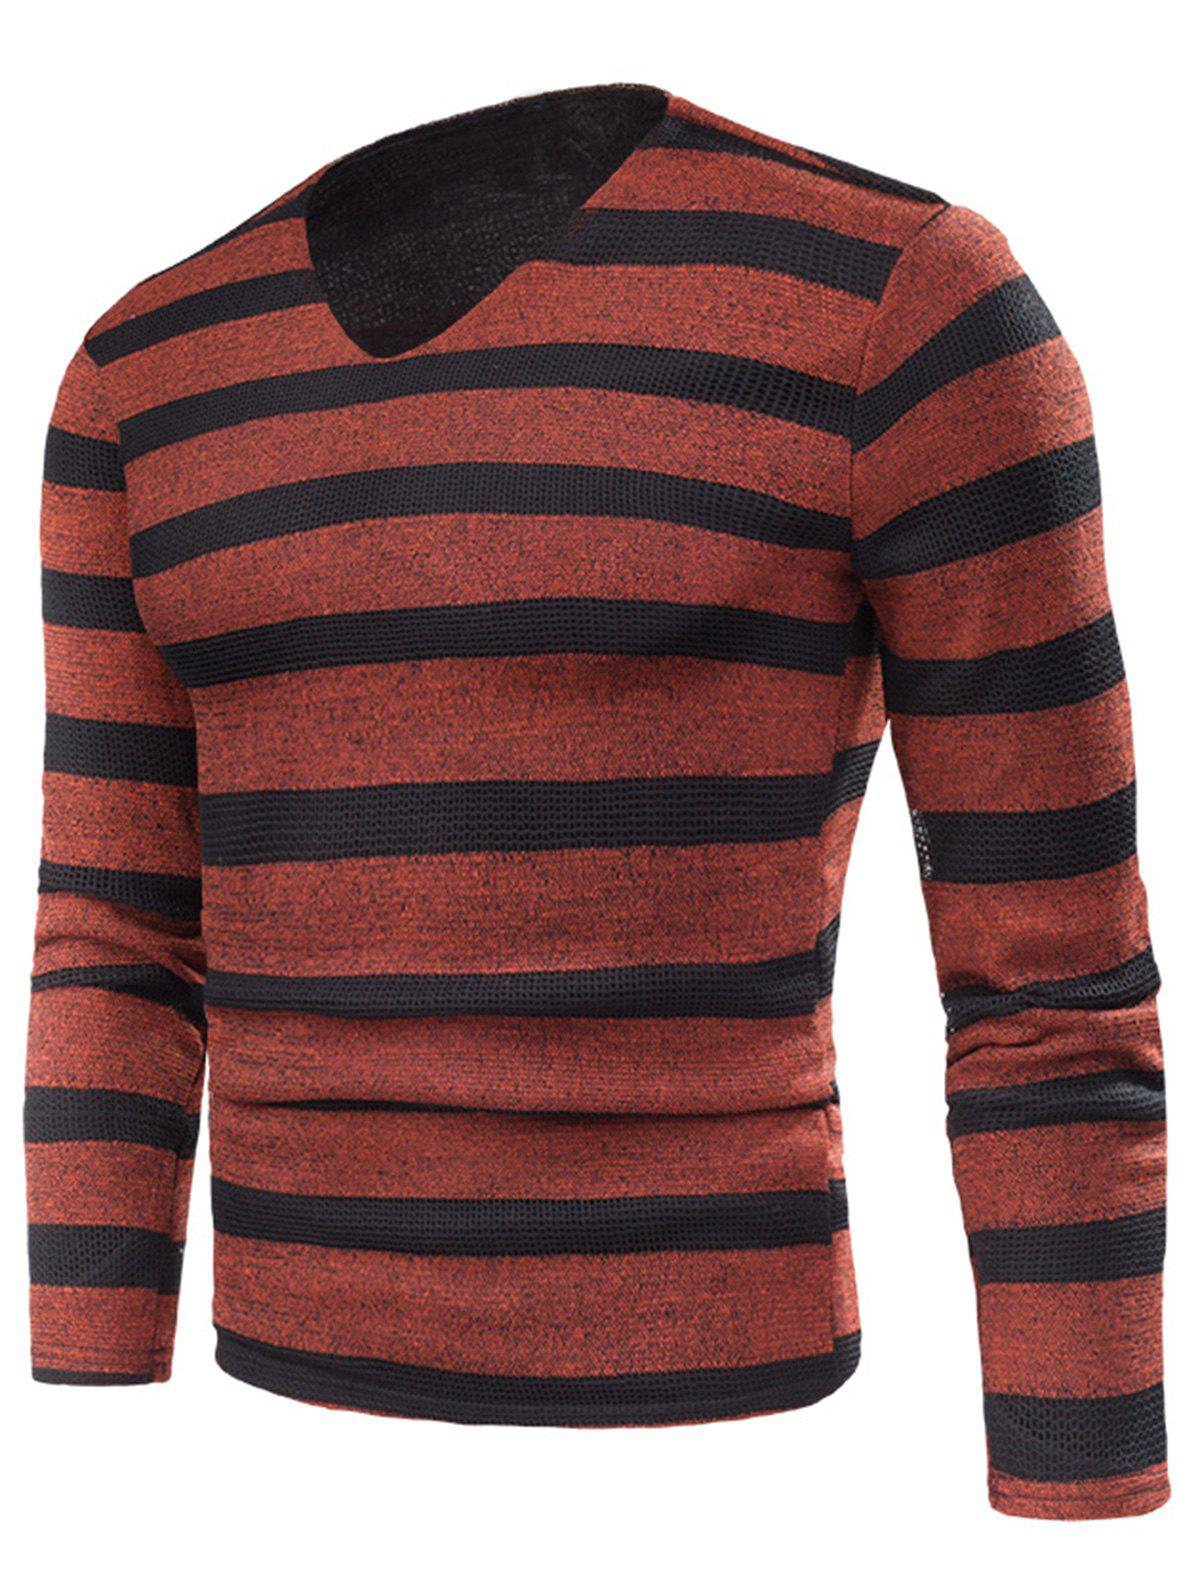 Fancy V Neck Stripe Knitted Fleece T-shirt